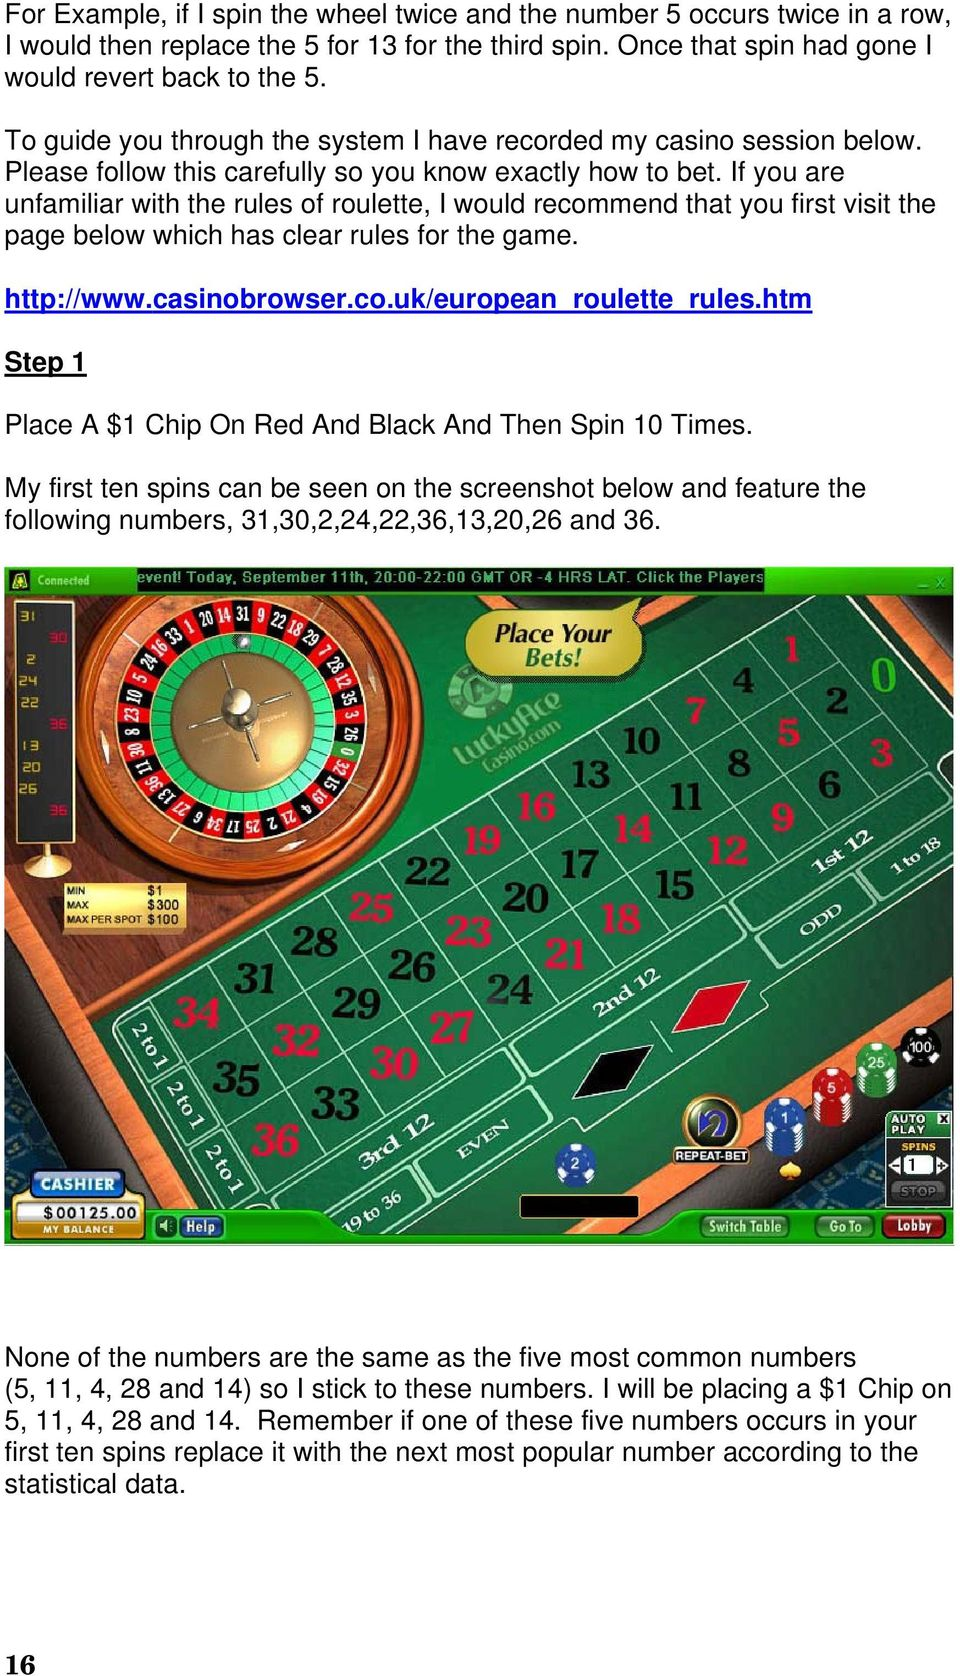 If you are unfamiliar with the rules of roulette, I would recommend that you first visit the page below which has clear rules for the game. http://www.casinobrowser.co.uk/european_roulette_rules.